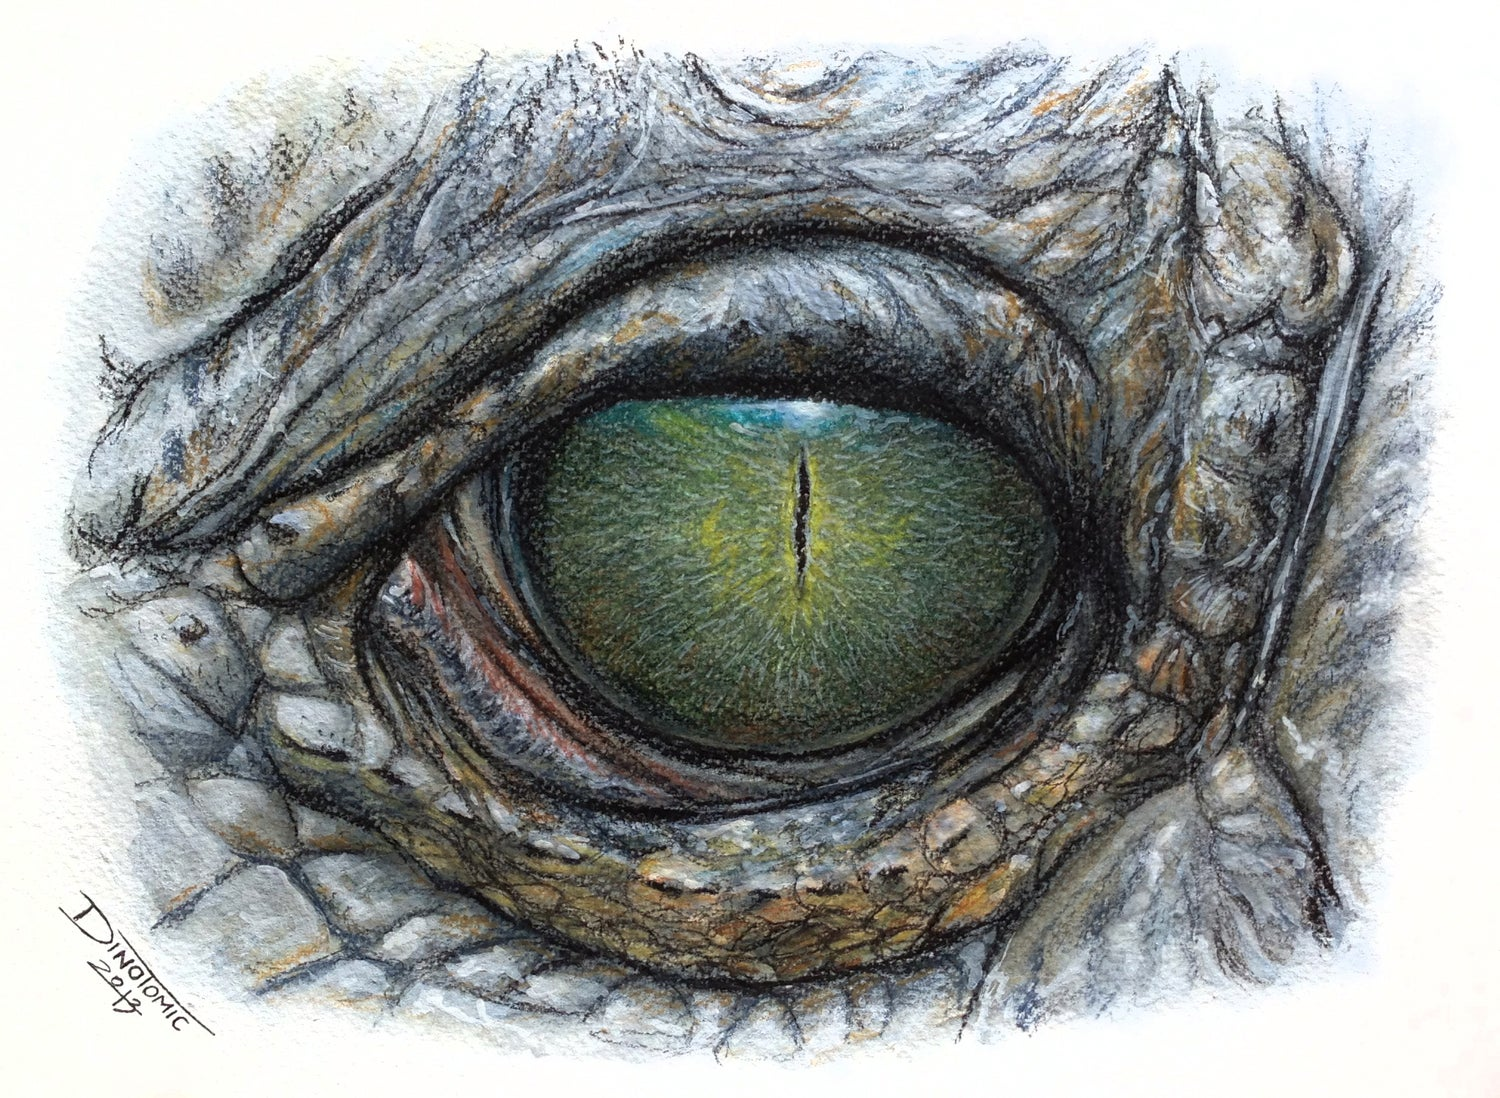 Image of #168 Reptile eye print